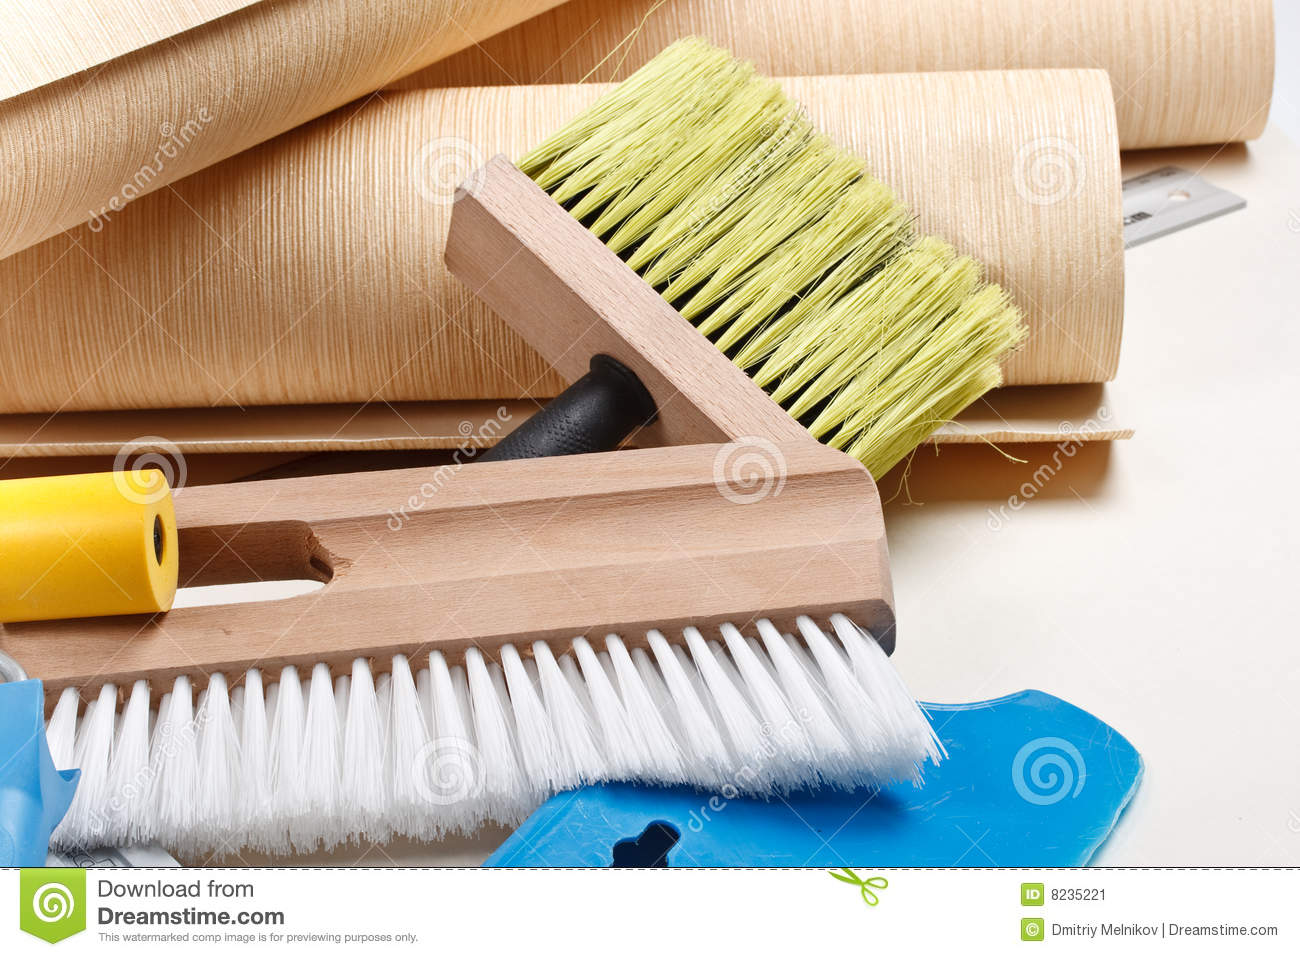 wallpapering tools stock image image 8235221